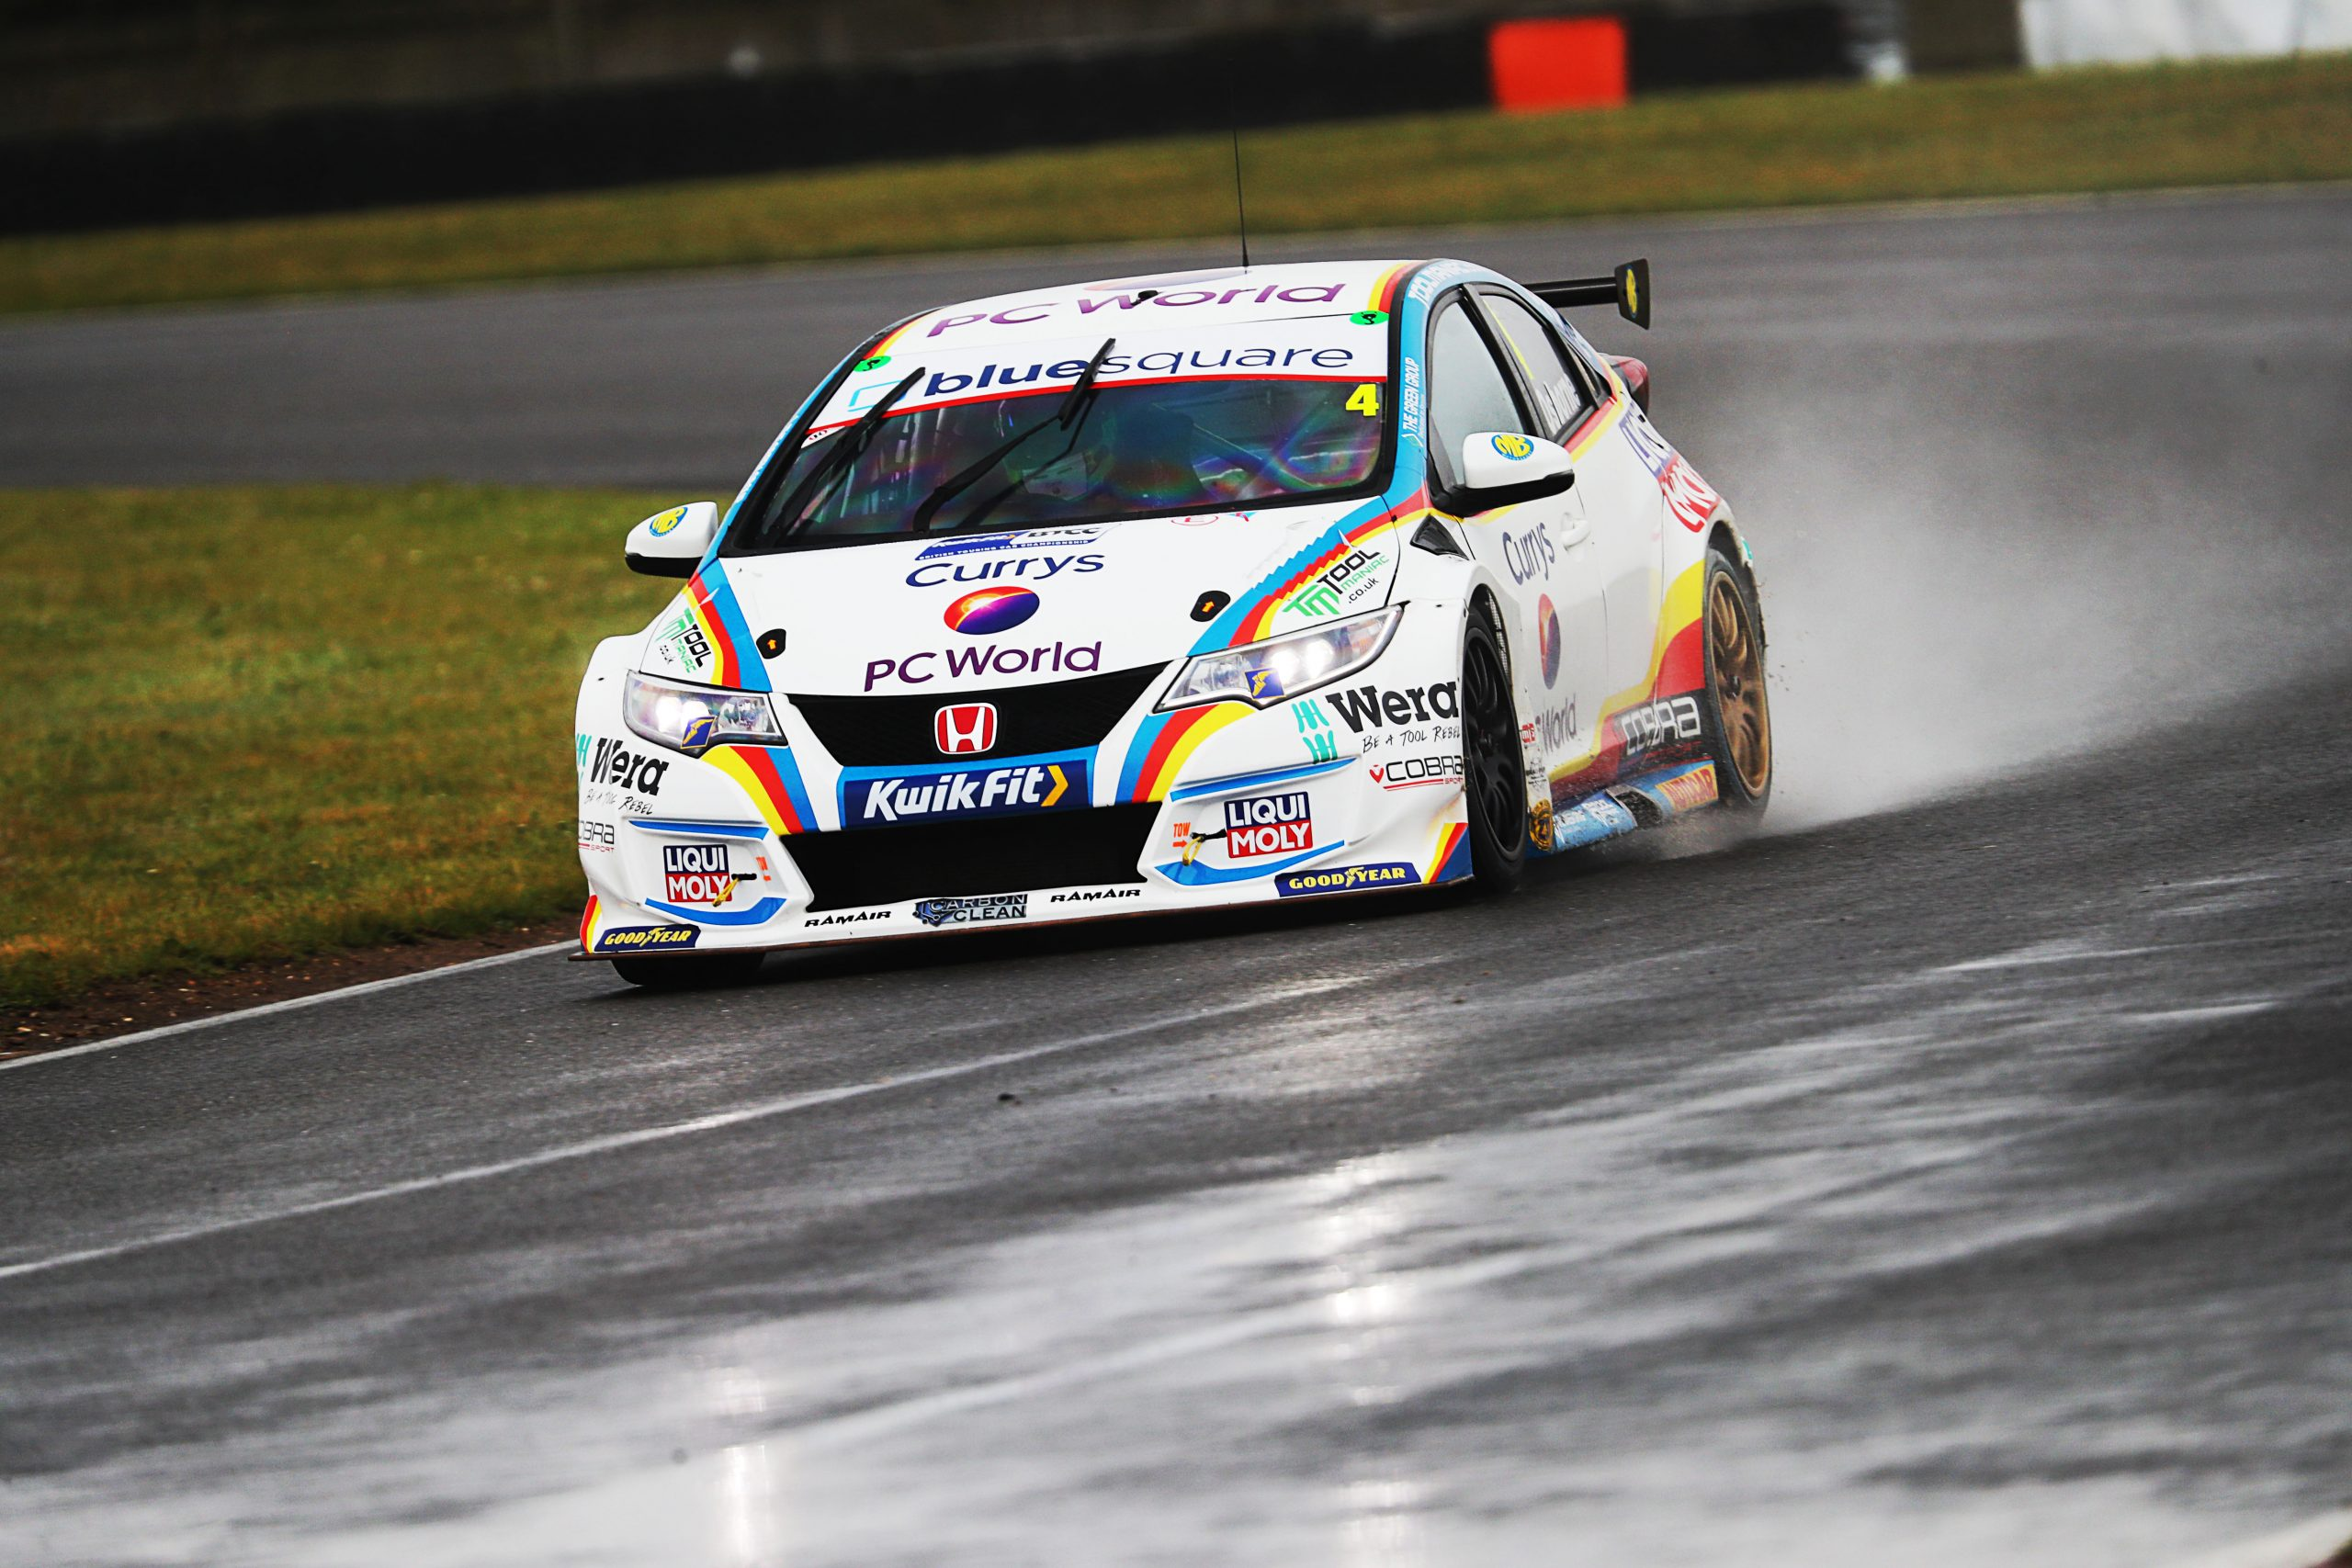 MB Motorsport accelerated by Blue Square eager to impress as BTCC season bursts into life at Donington Park